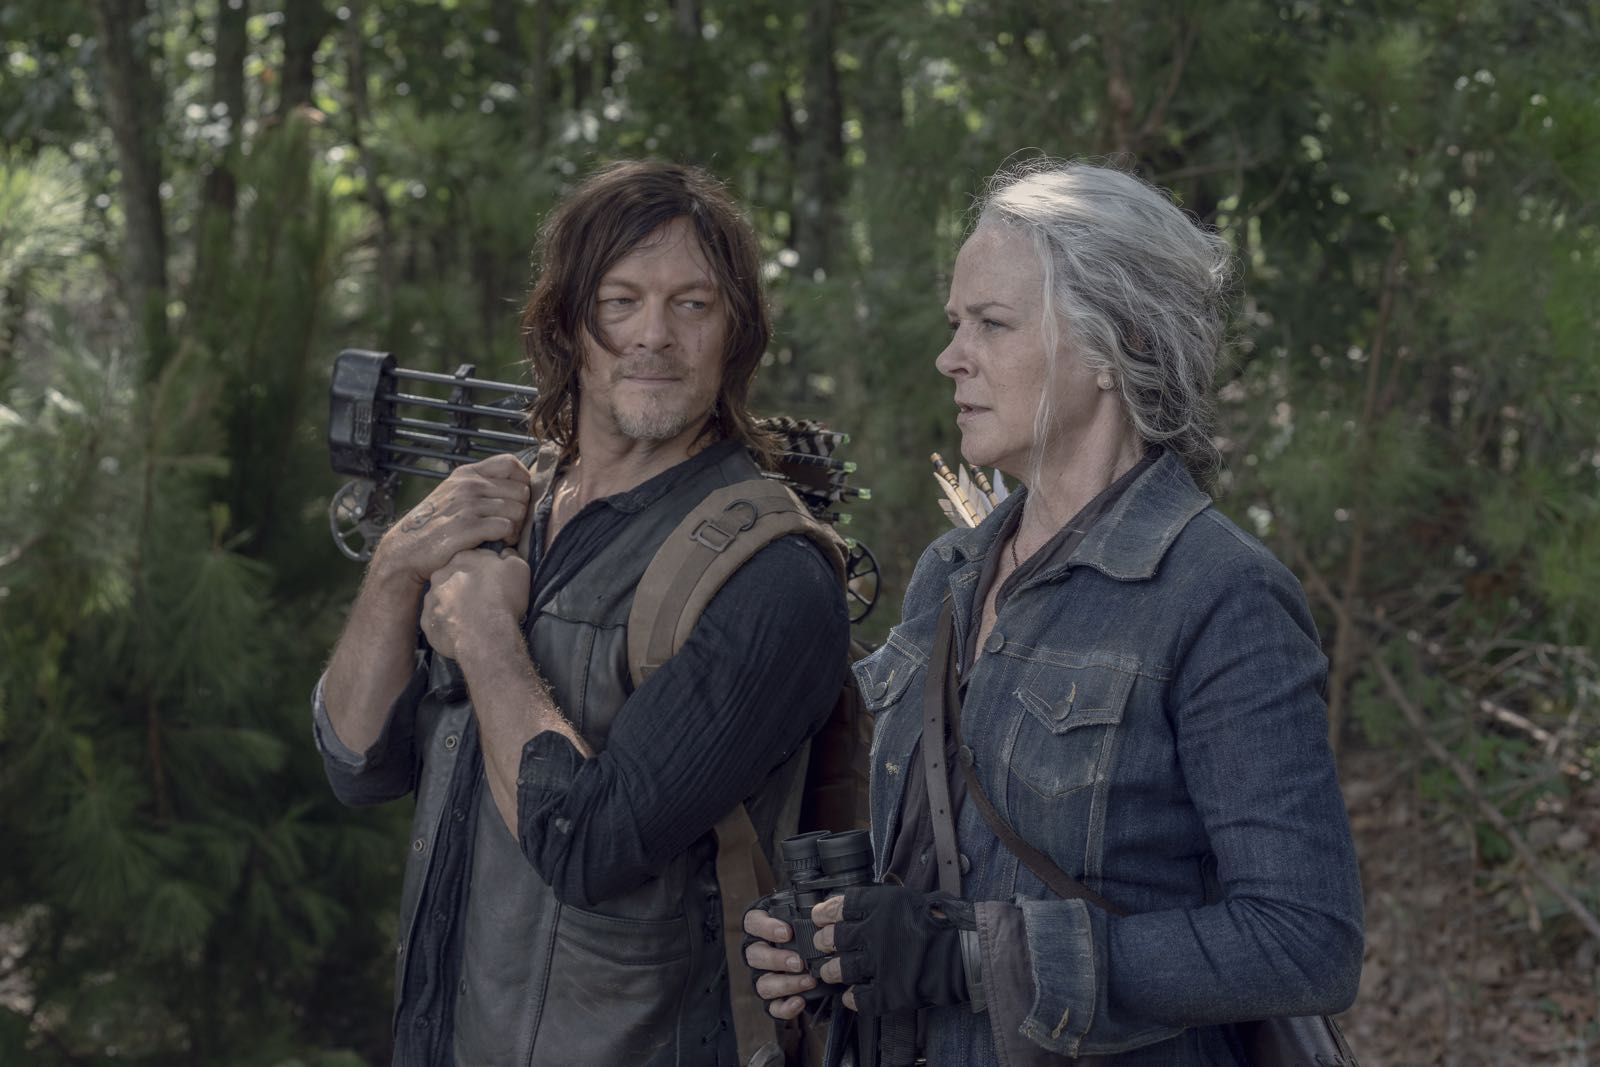 Twd 1006 jd 0805 0393 rt